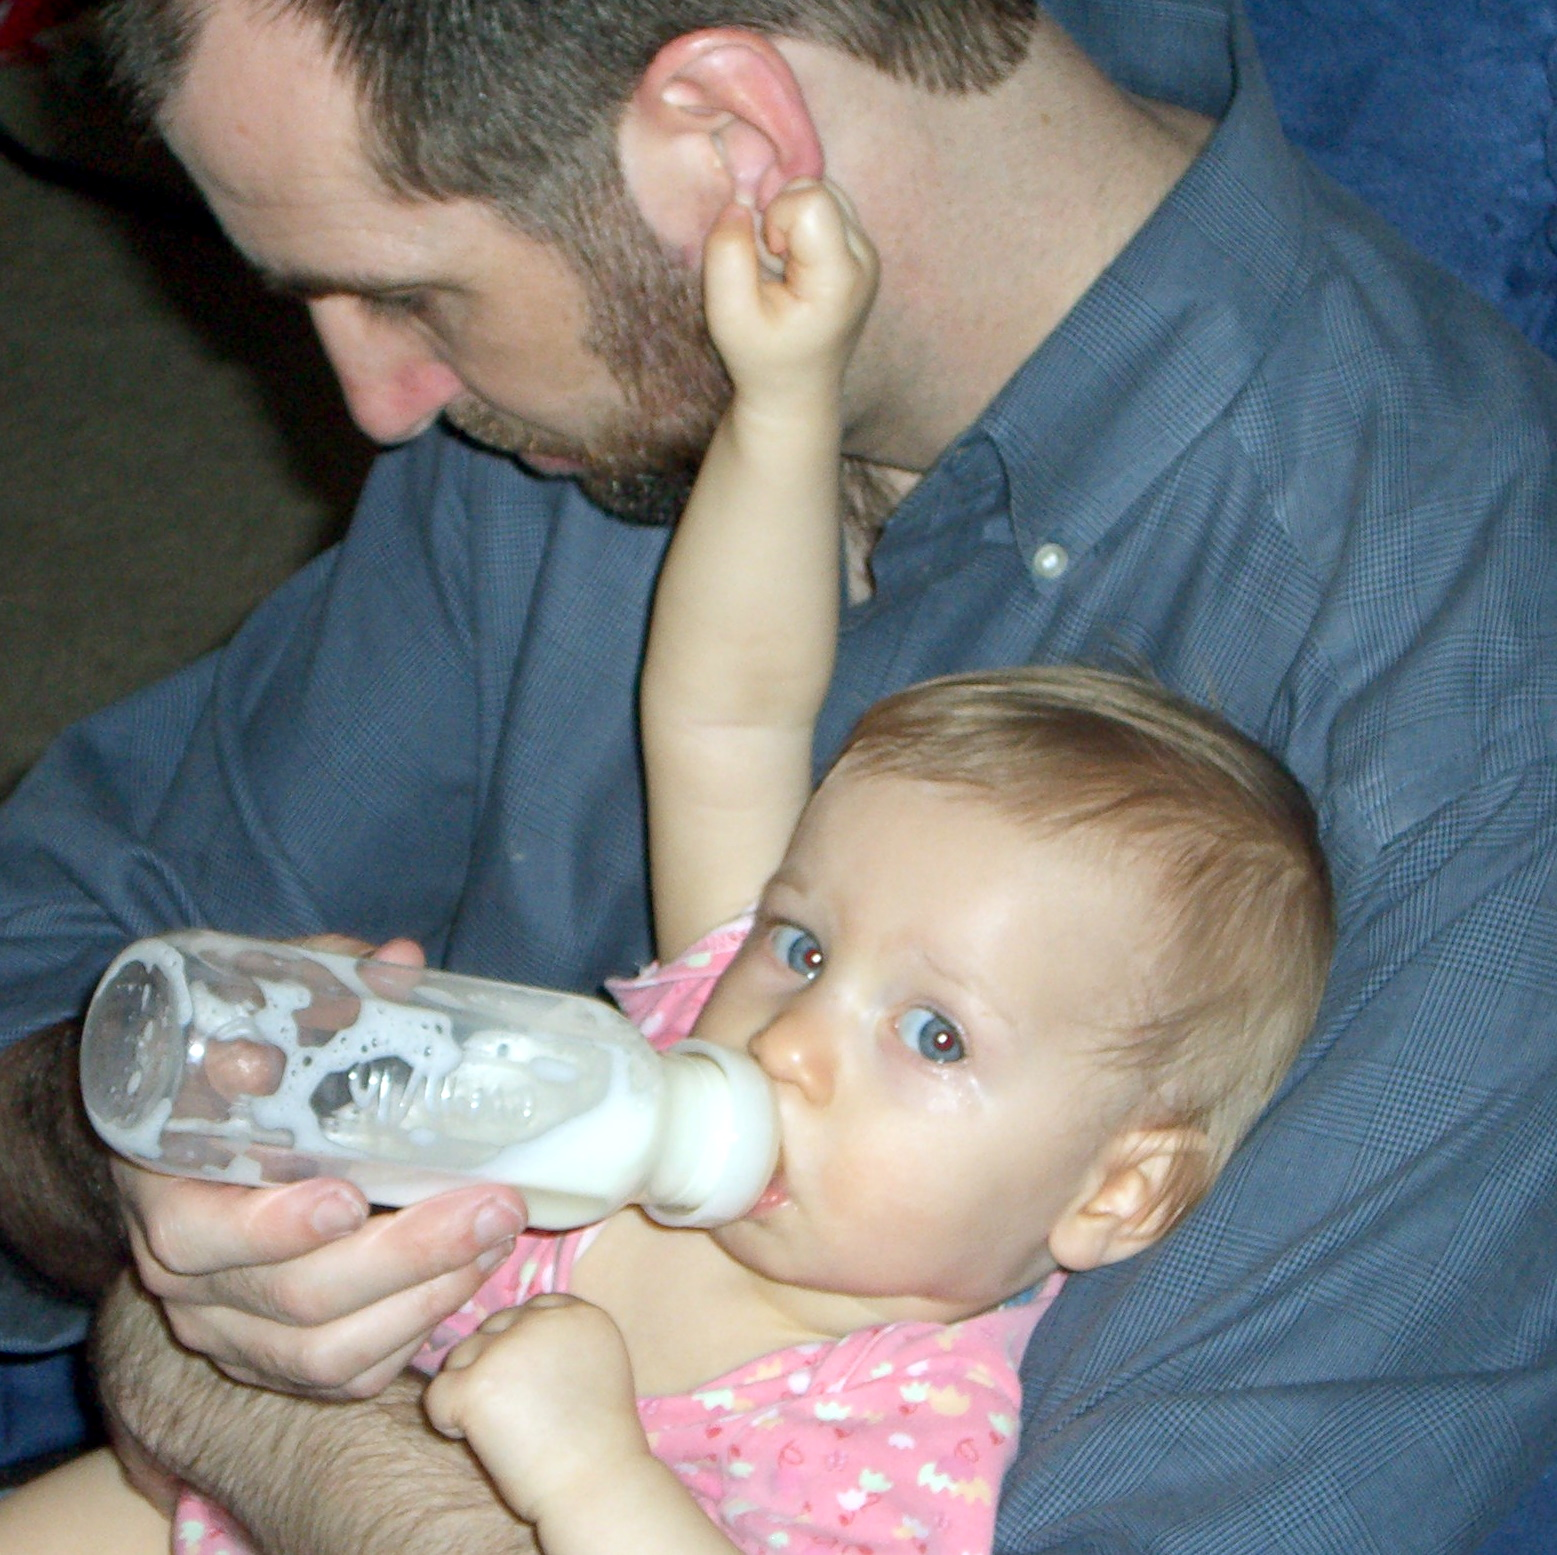 Bottle-feeding while holding an ear, March 2006